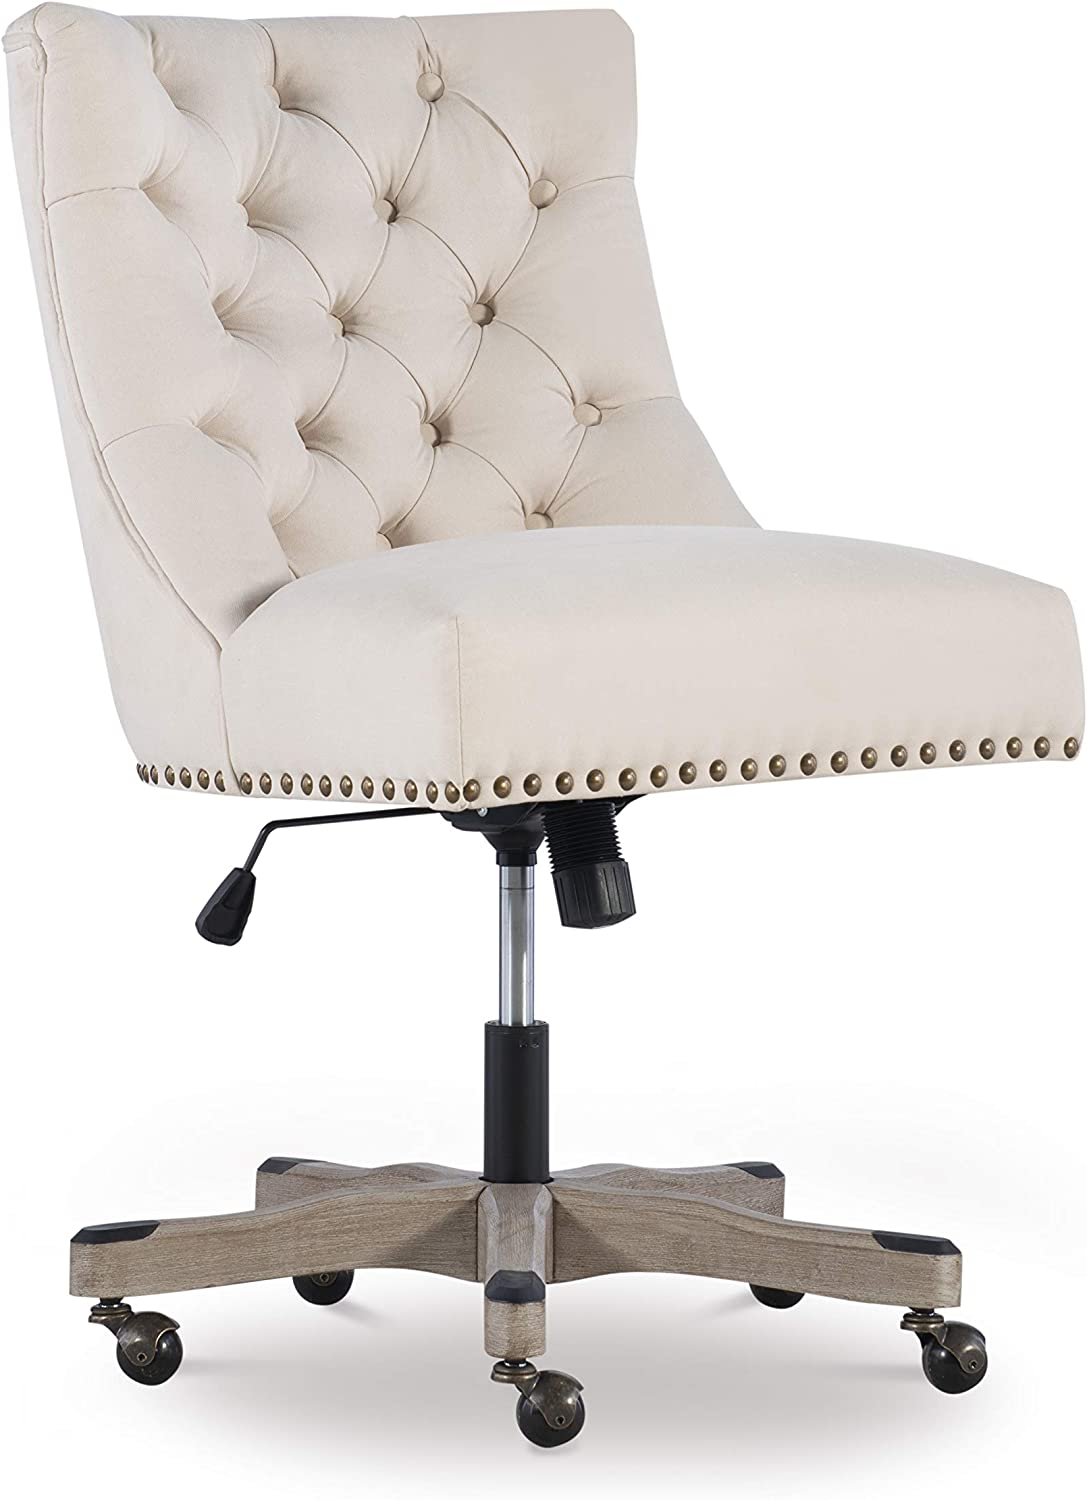 Linon Home Décor Honor Natural Office Chair, Beige